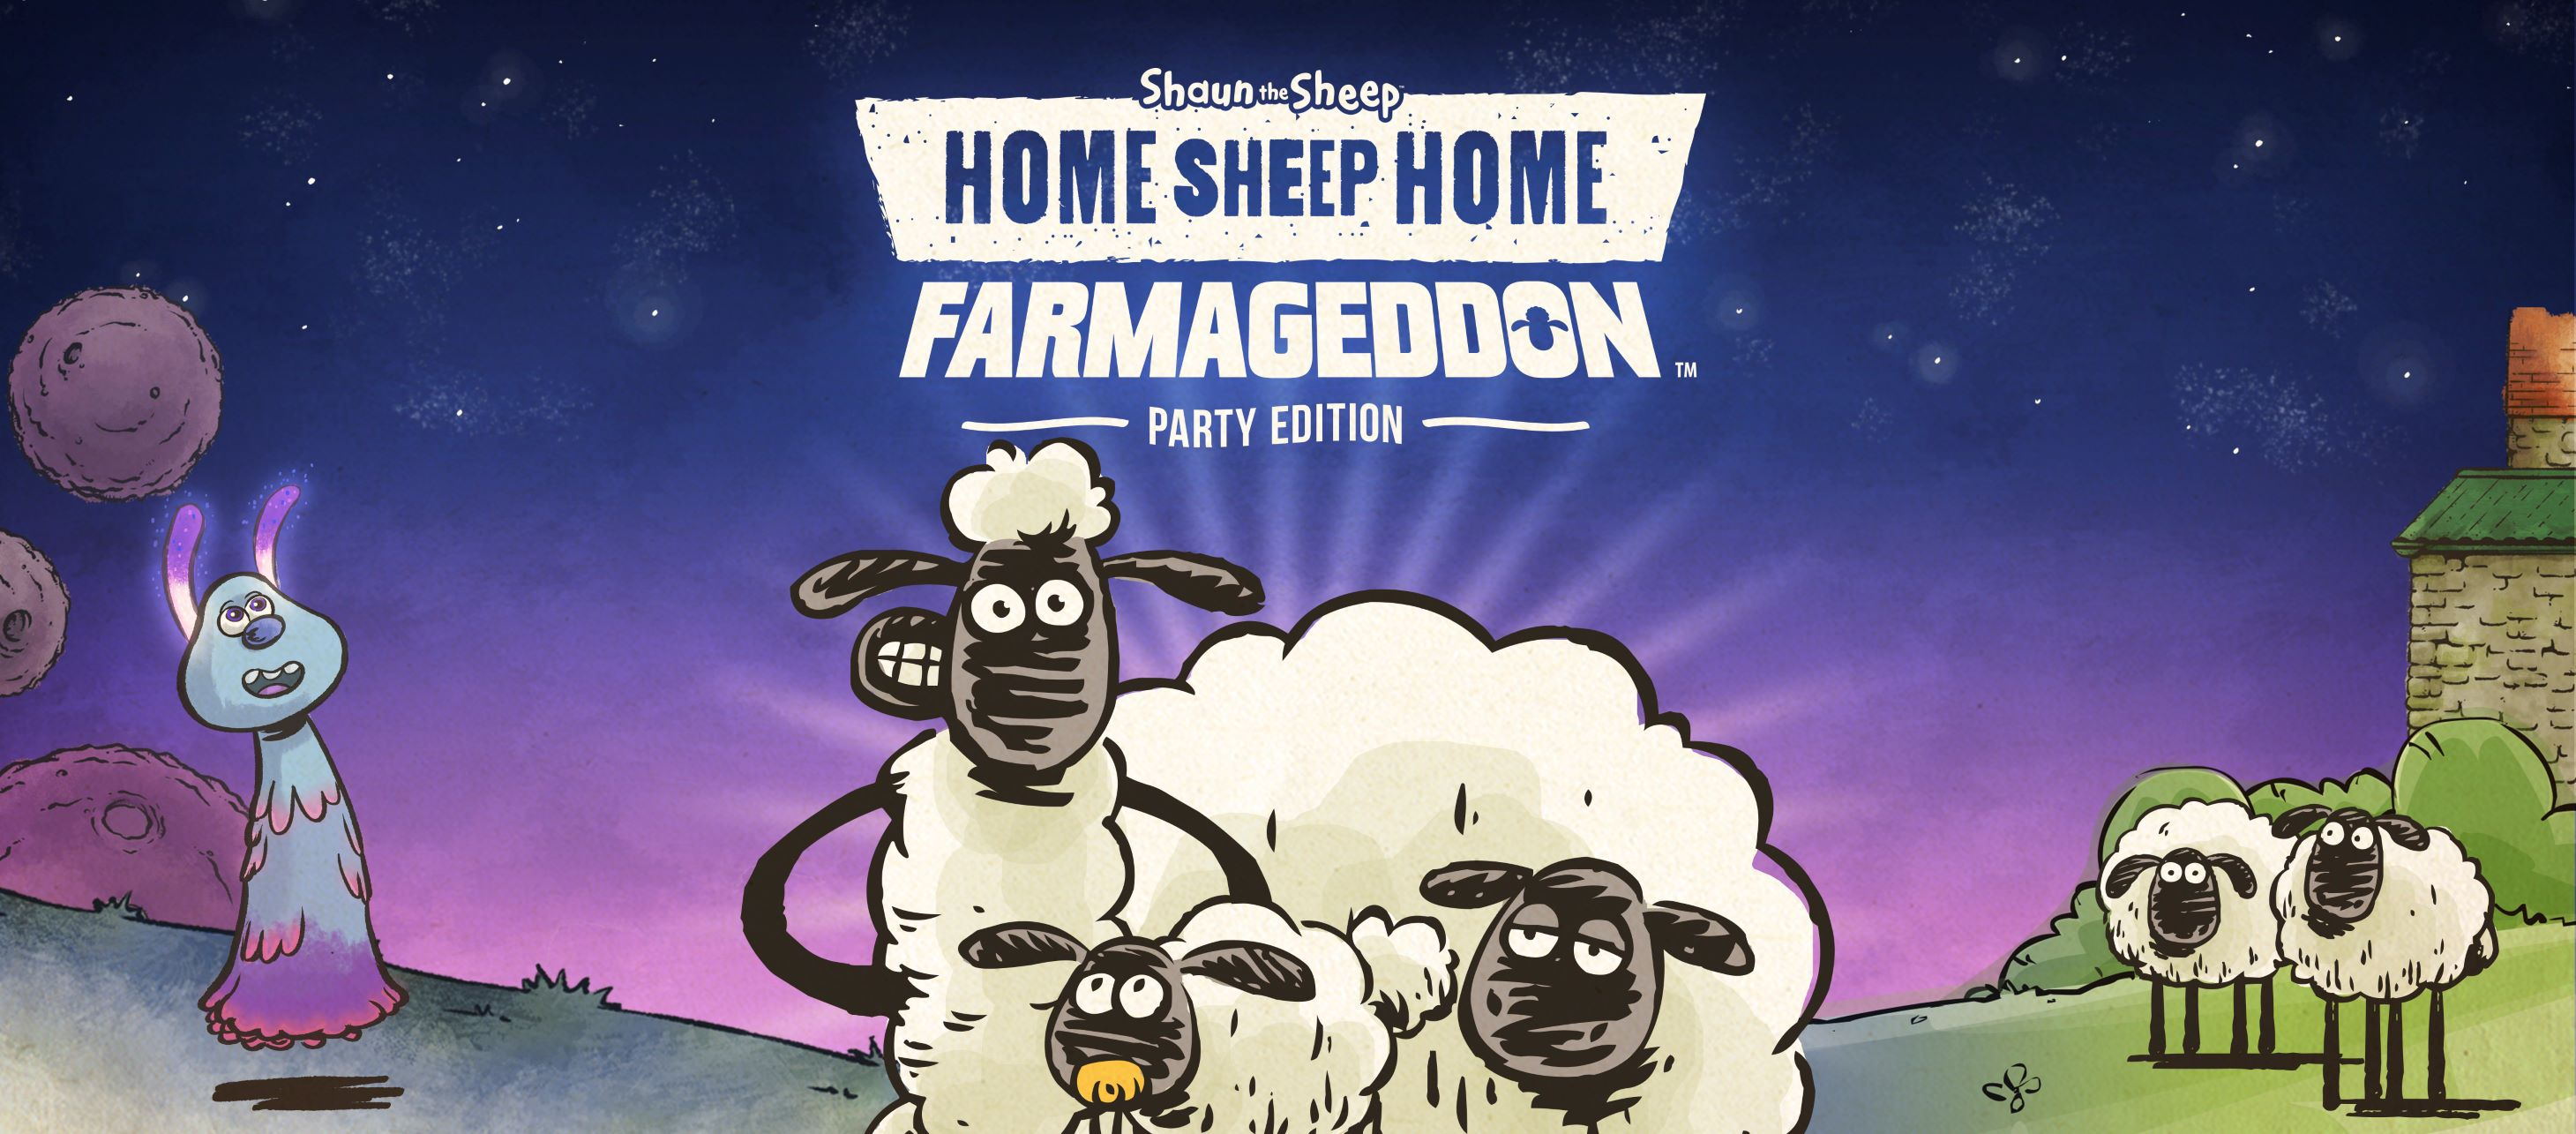 Home Sheep Home Farmageddon